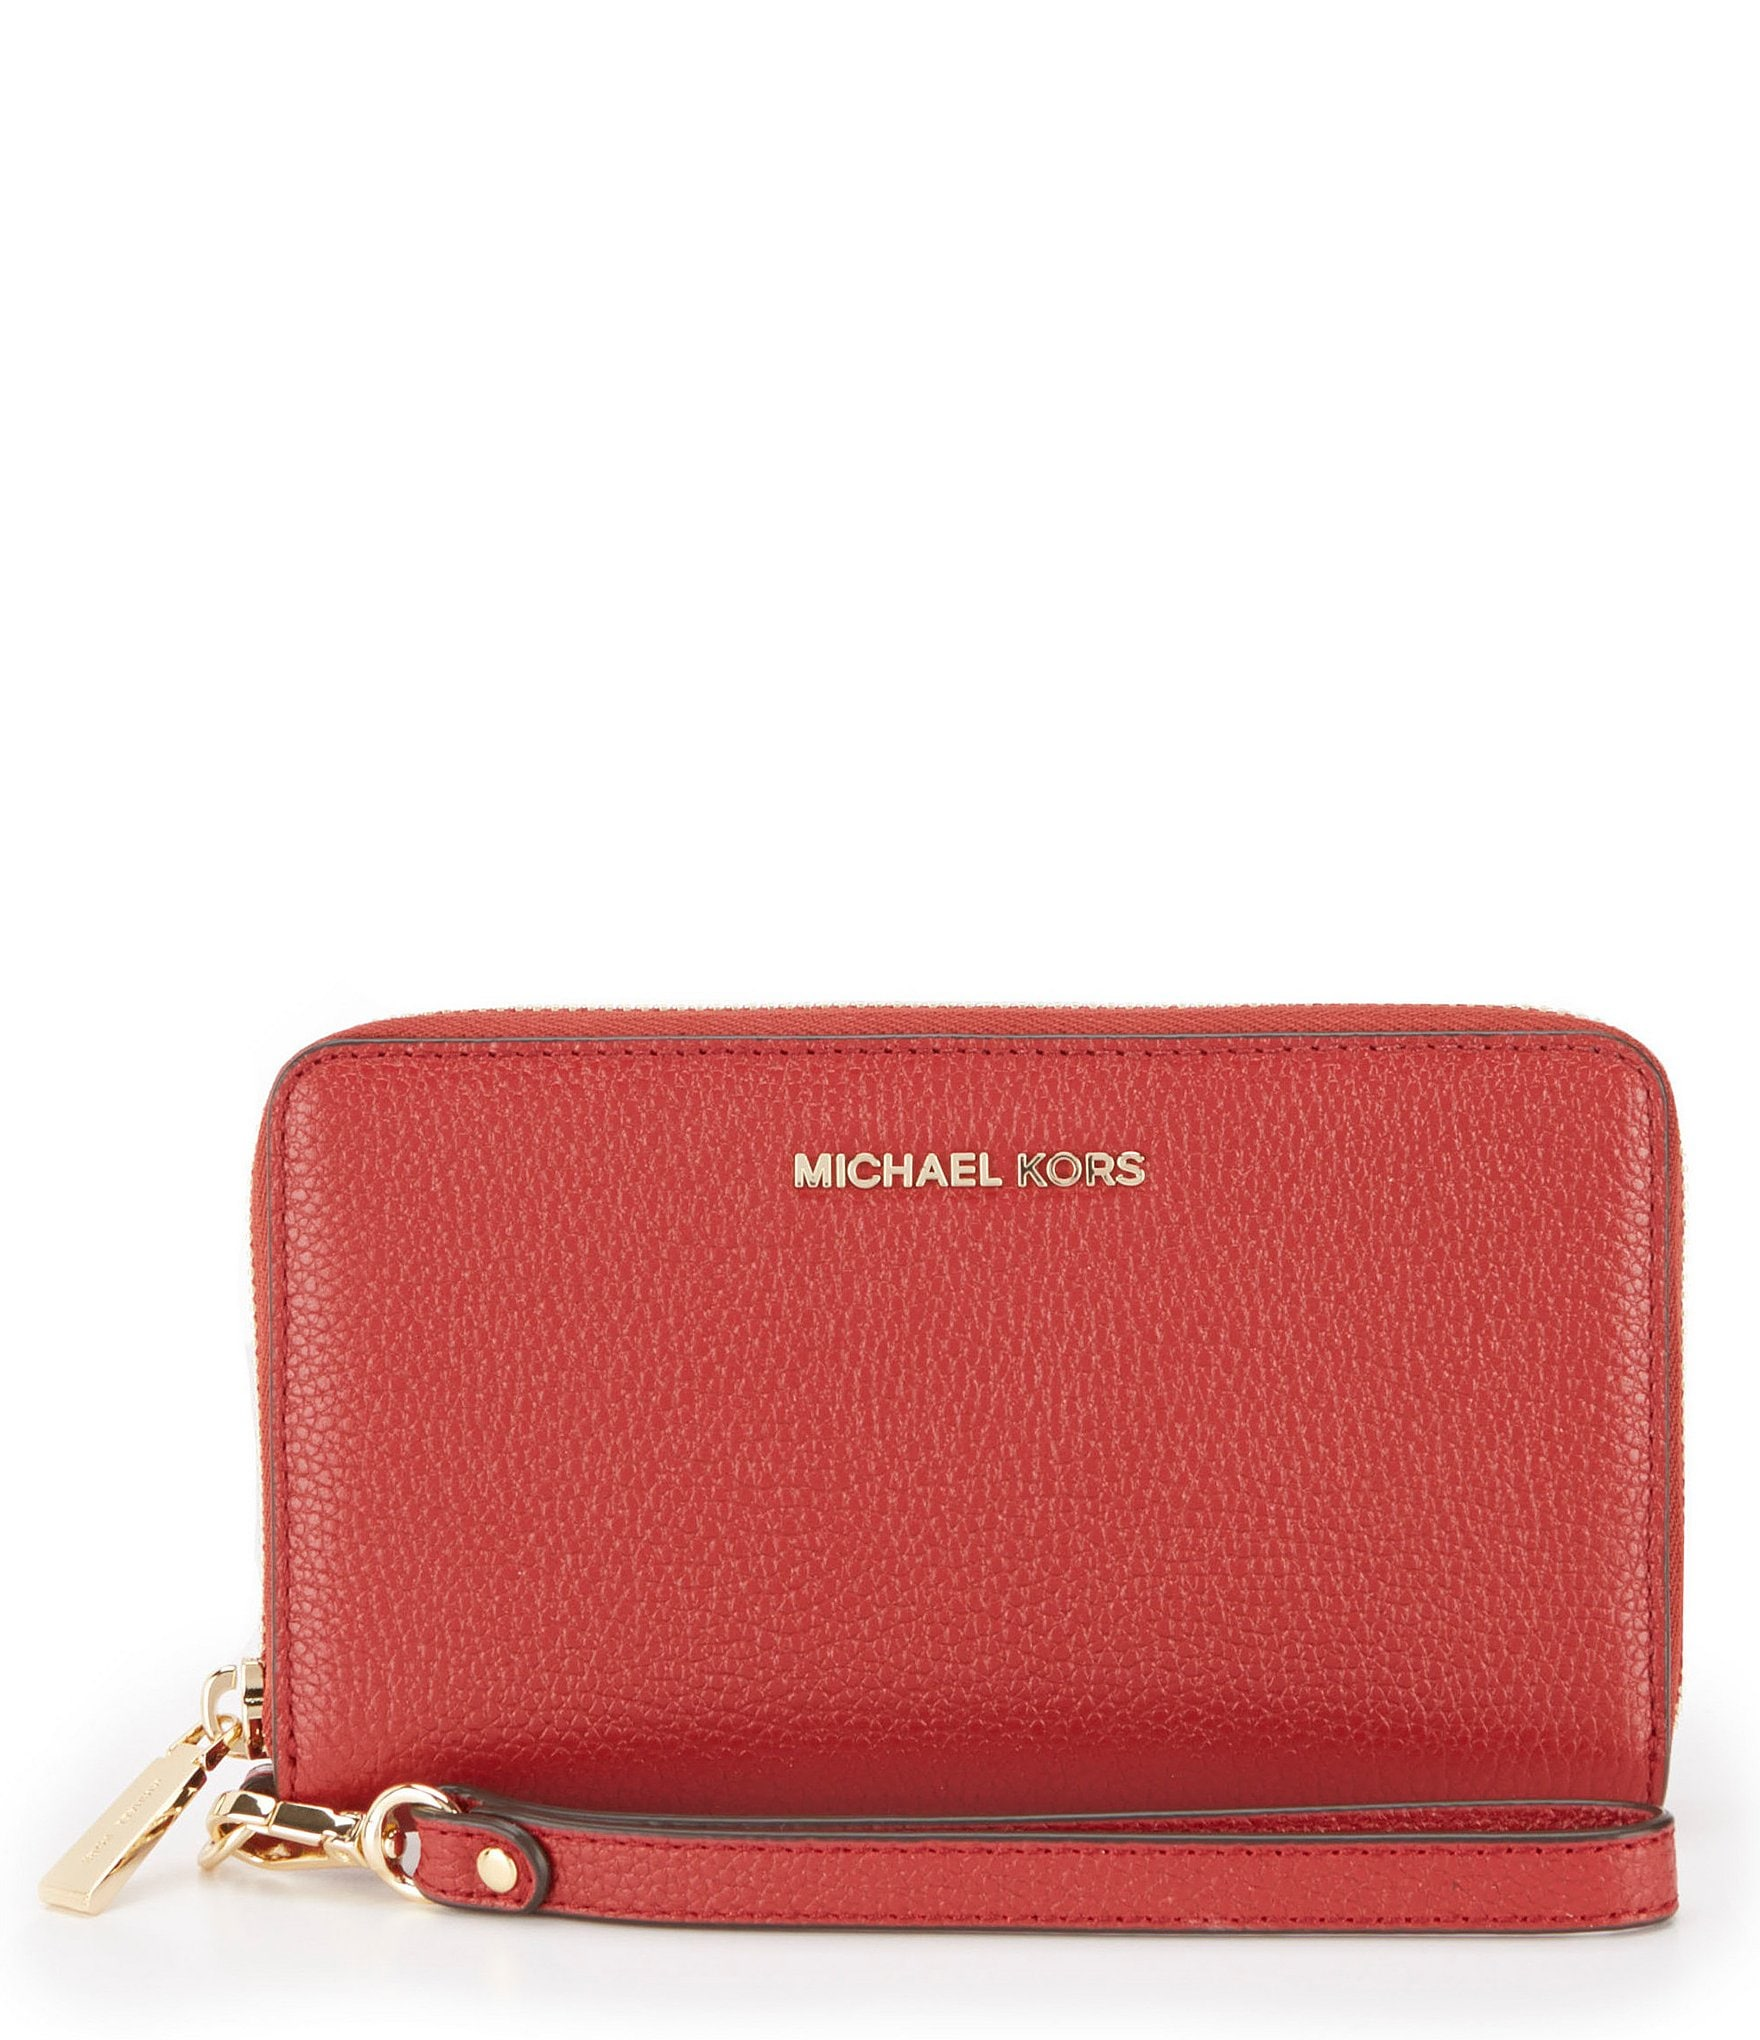 952cdff326 Buy michael kors laptop tote red   OFF65% Discounted